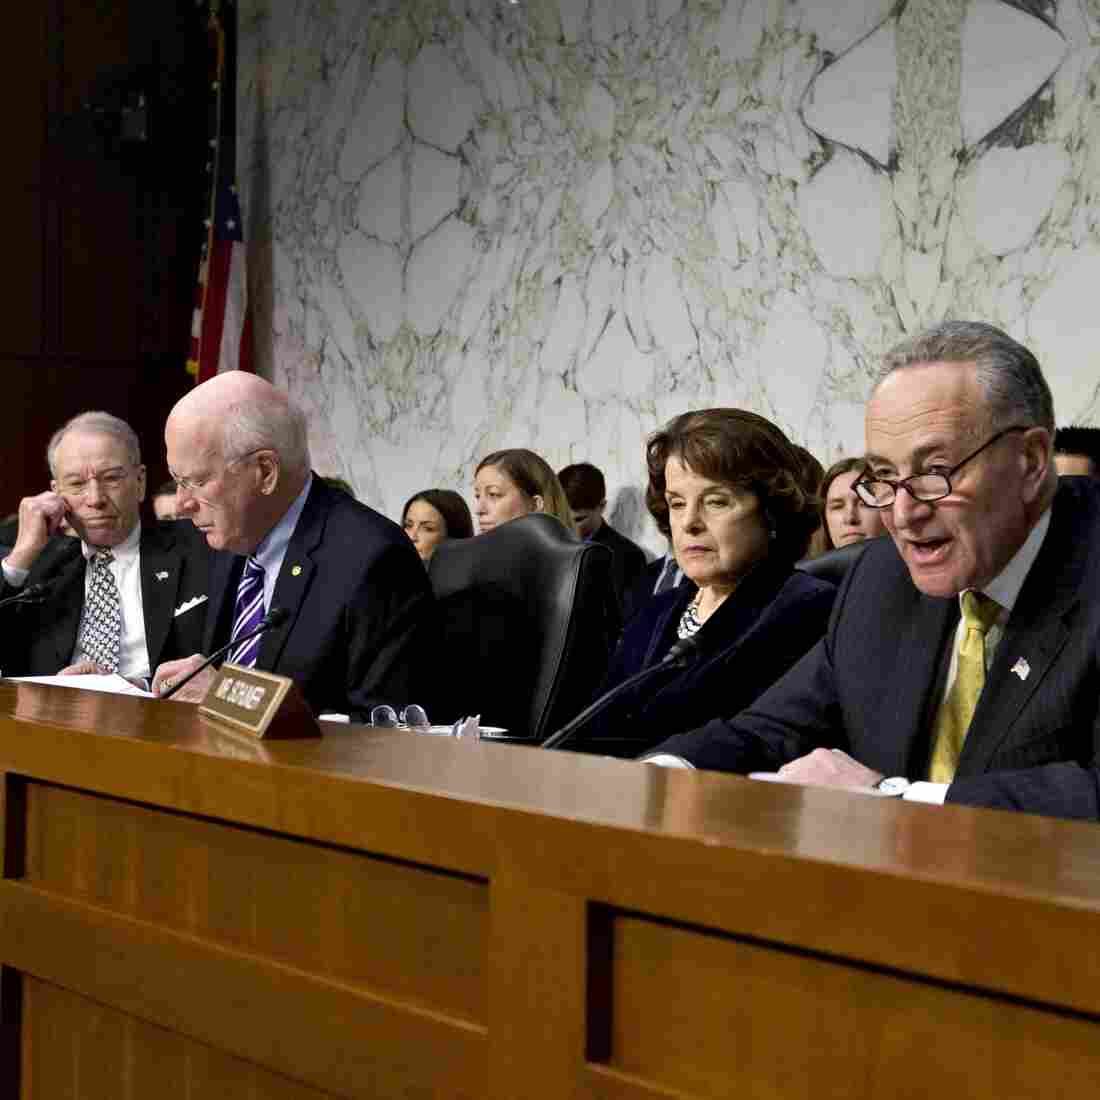 Sen. Chuck Schumer, D-N.Y. (right), talks during a hearing at which he angered Sen. Chuck Grassley, R-Iowa (far left). Grassley thought Schumer was accusing him of using the Boston bombings as an excuse to slow or kill the immigration overhaul.